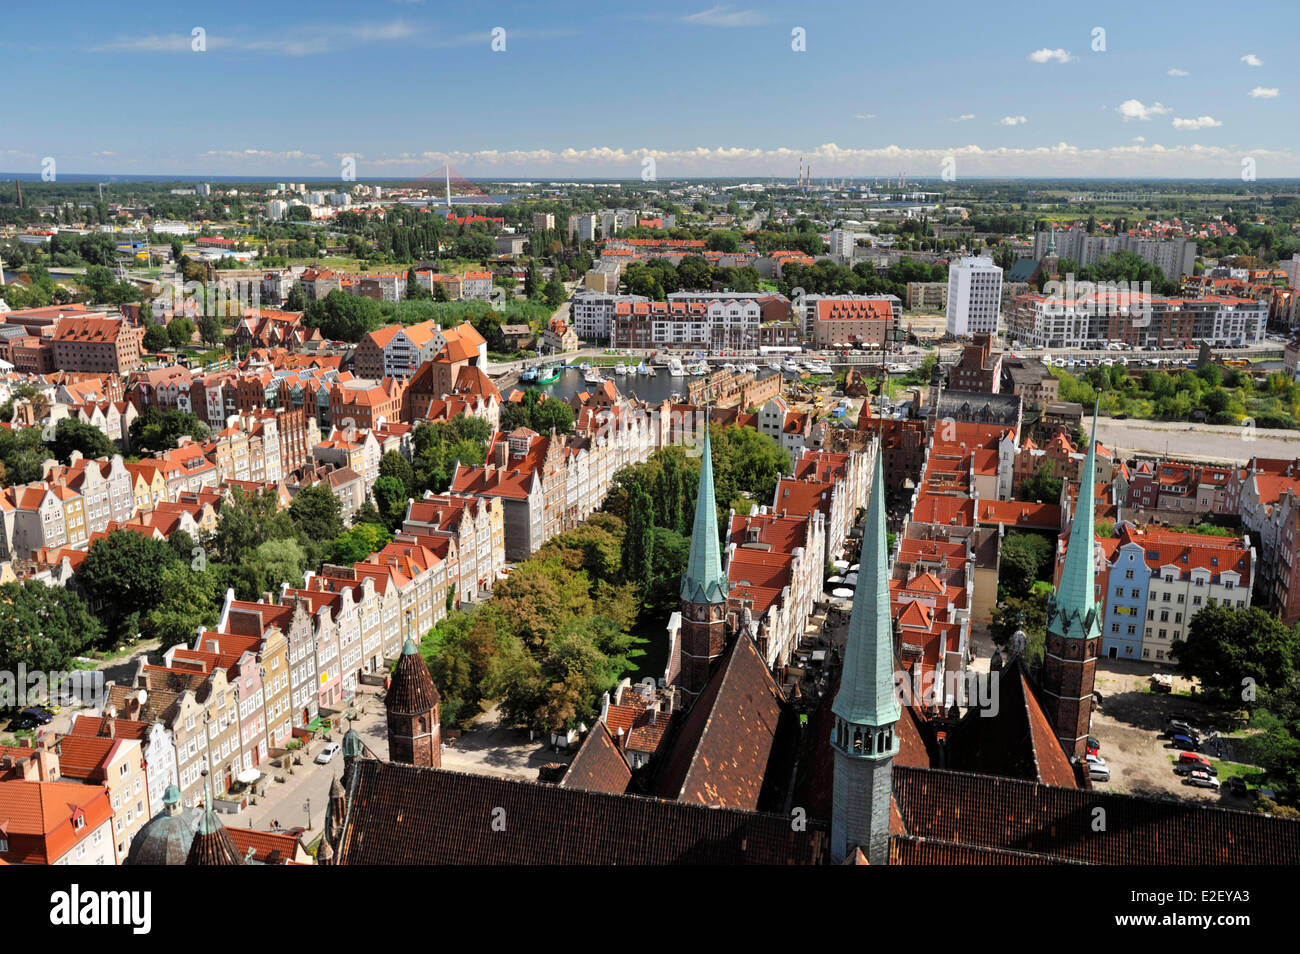 Poland, Pomerania, Gdansk, View of Gdansk from the top of St. Mary's Basilica Stock Photo